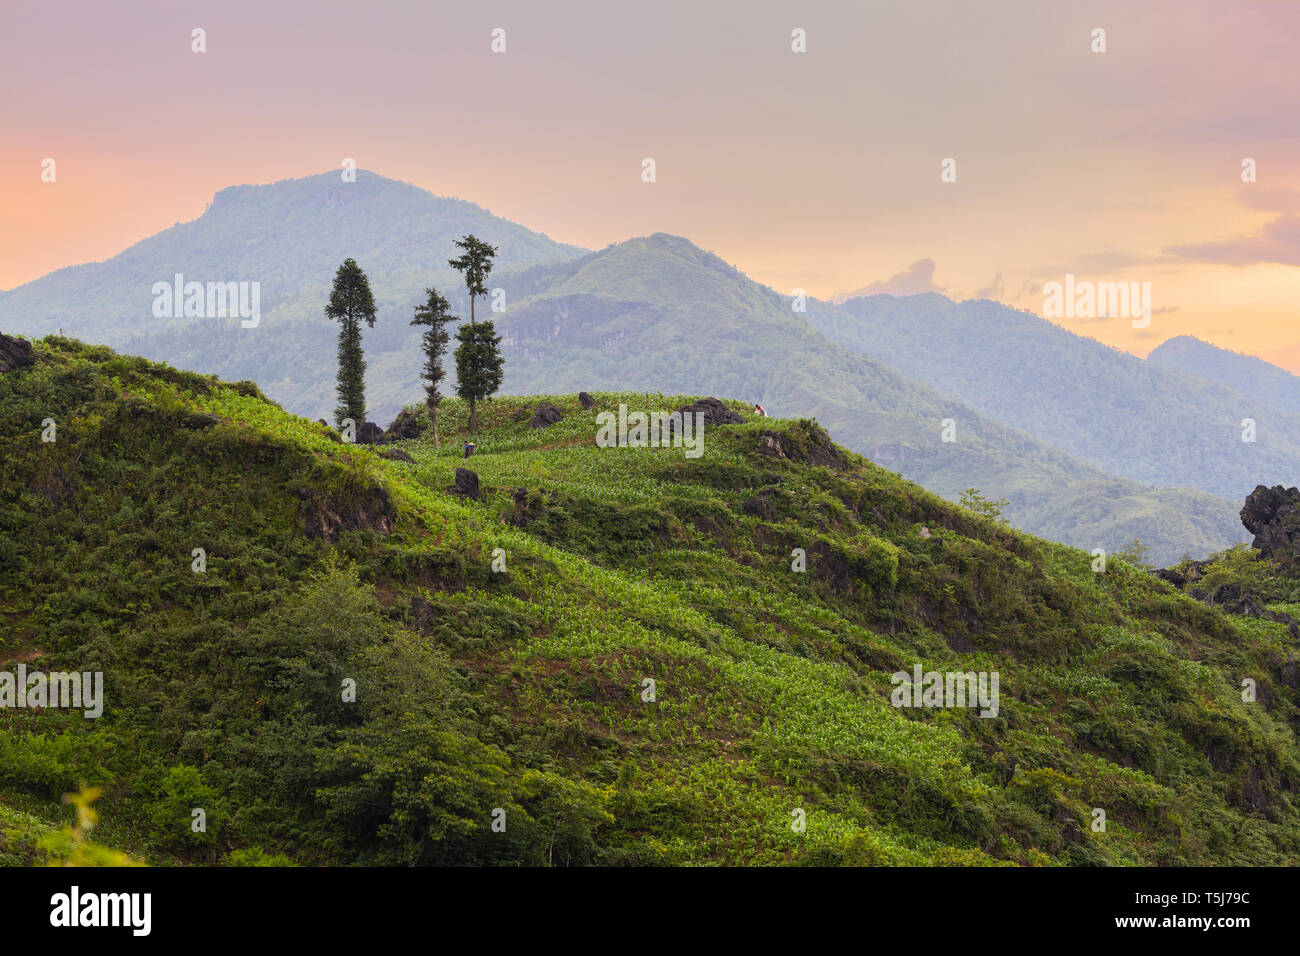 Three trees ontop of a hilltop, SaPa, Vietnam, Asia Stock Photo